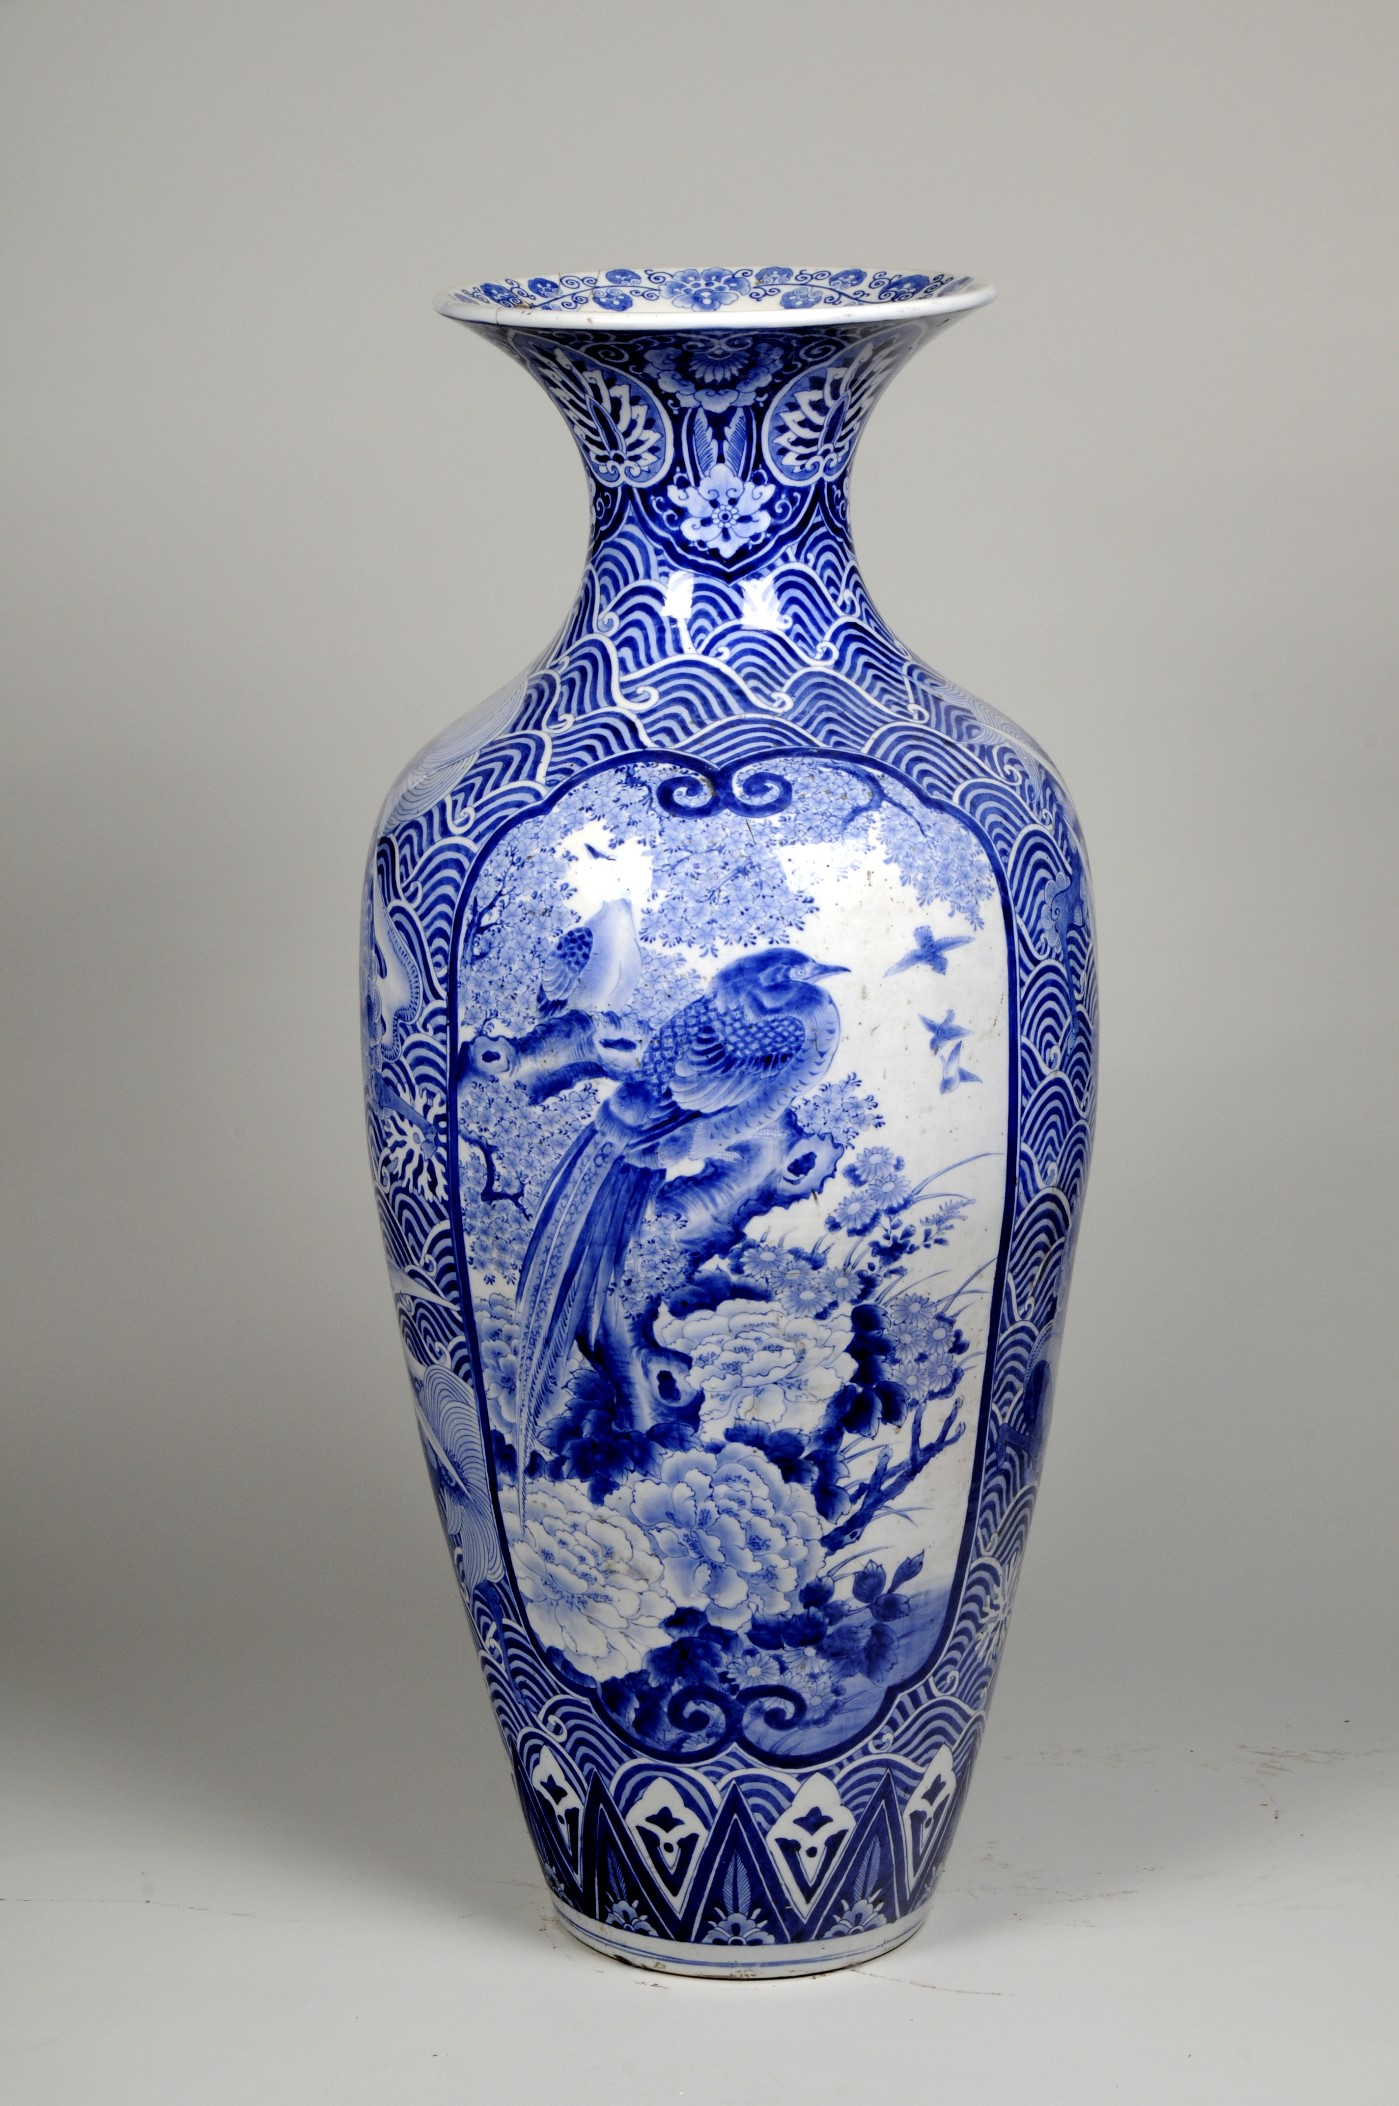 Blue and white ceramic vase with an image of a bird in the centre and wave motifs around it